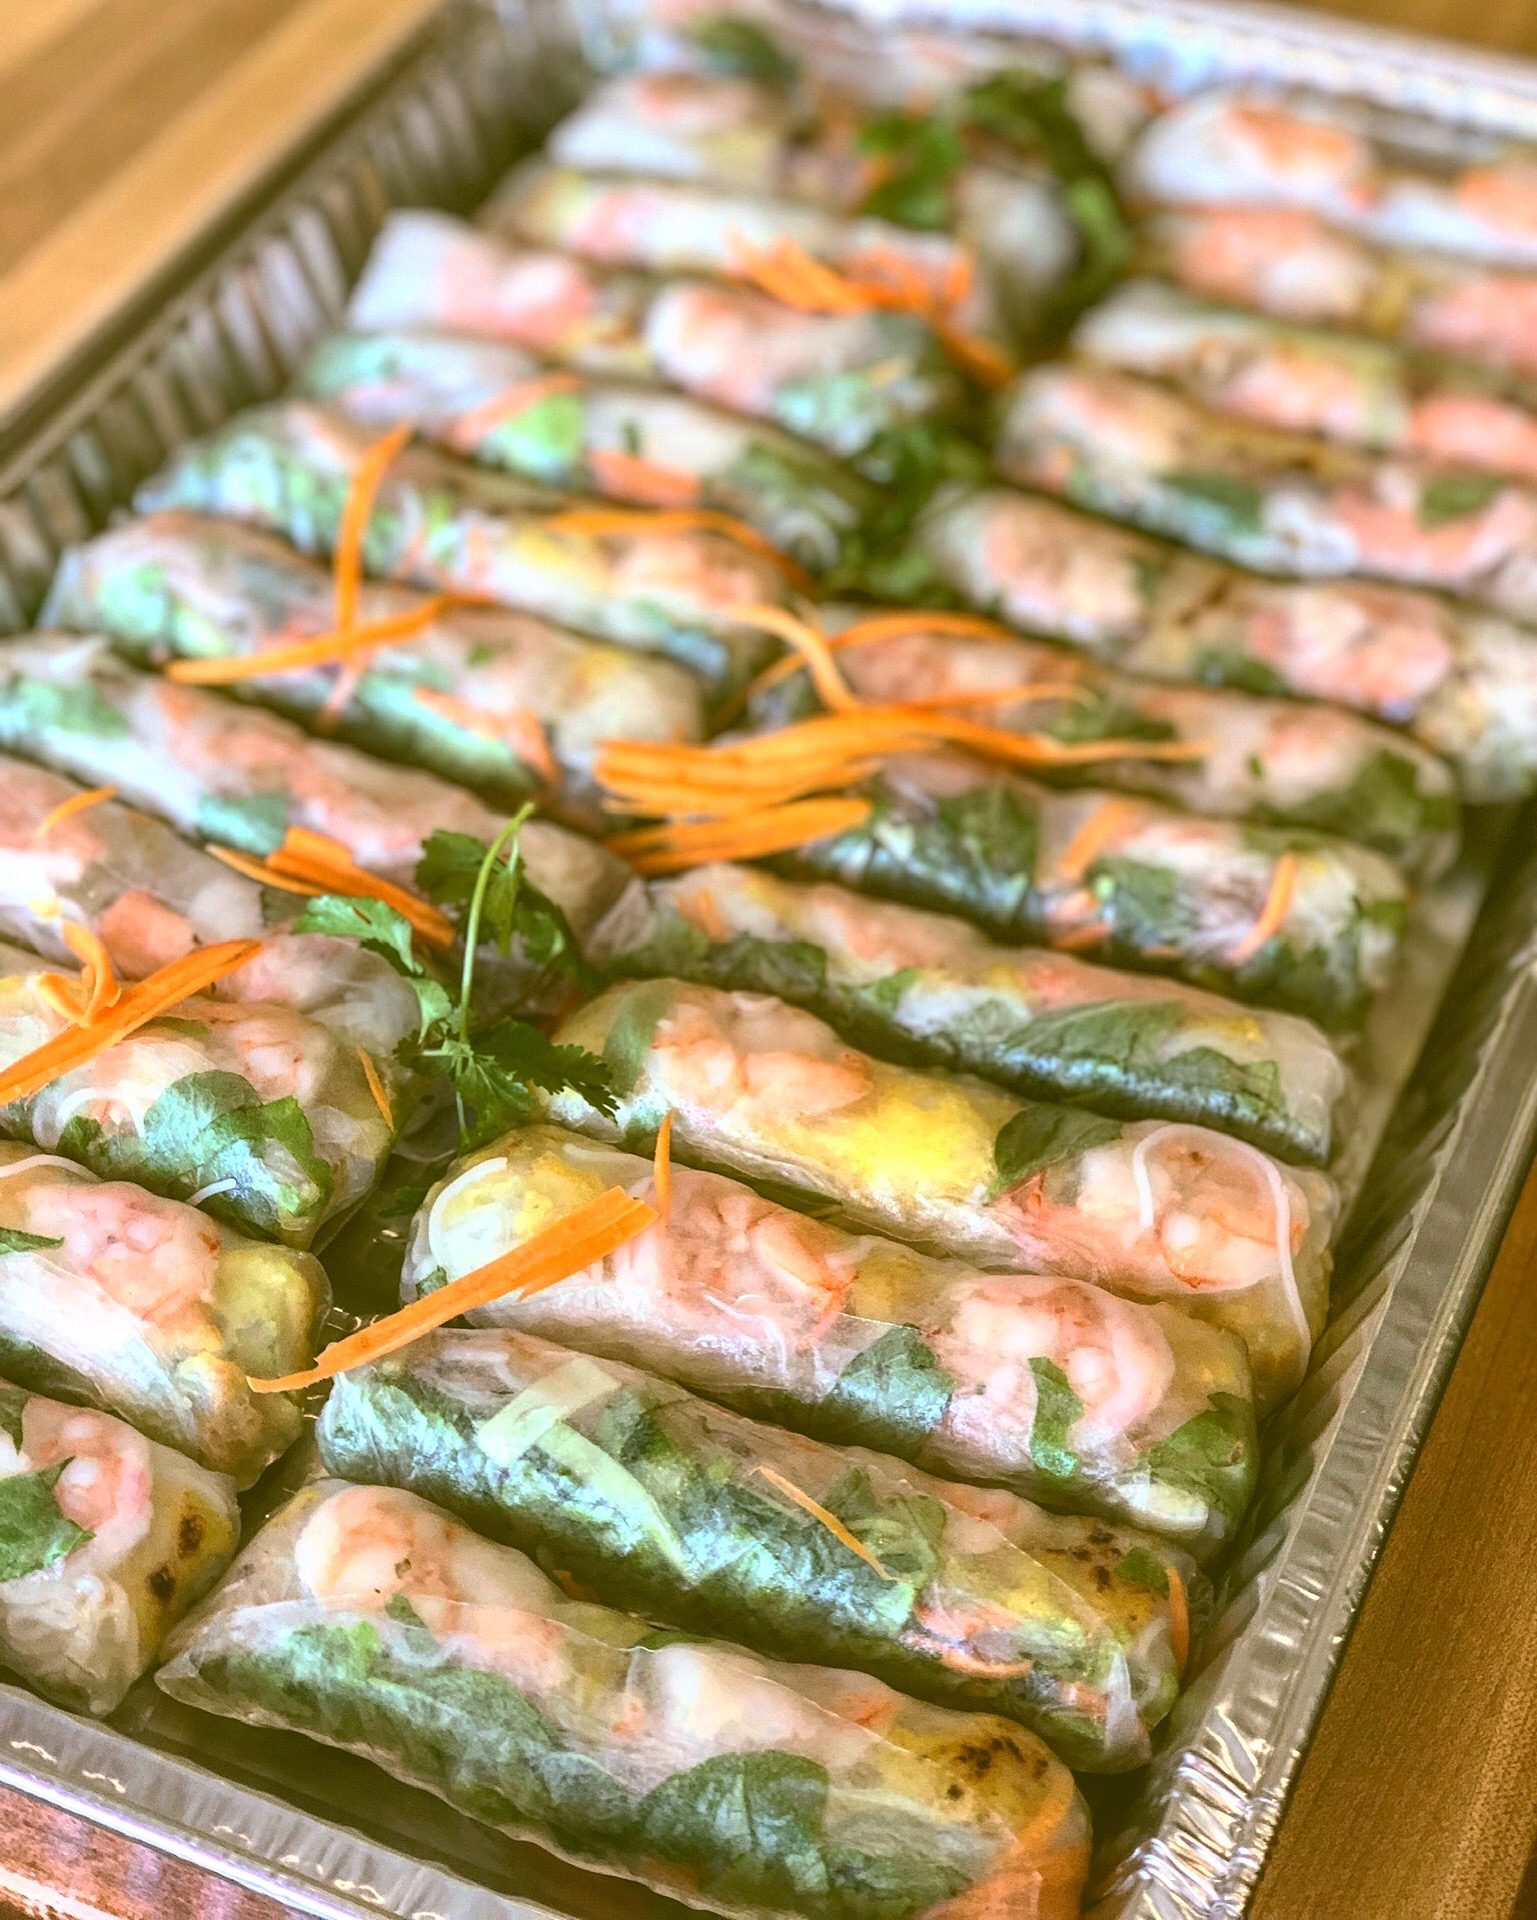 Catering order: Shrimp rolls with crepe